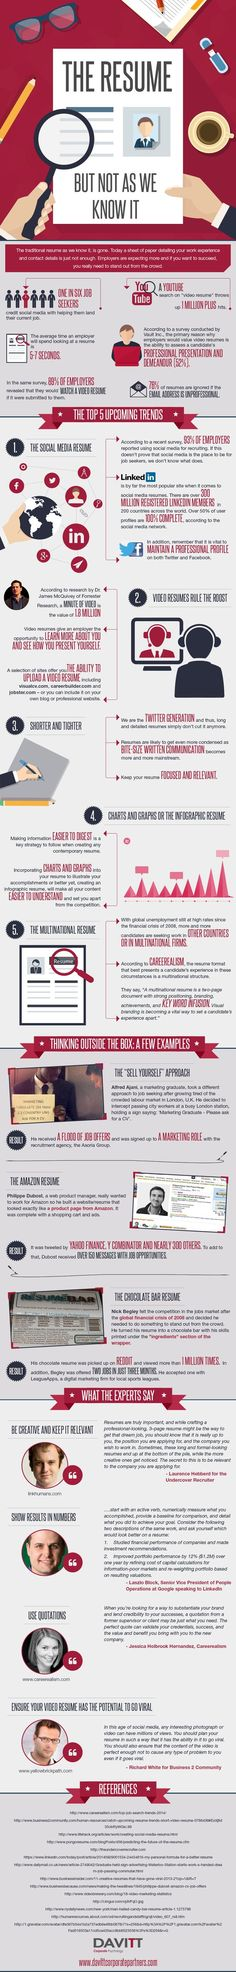 What Skills To Put On A Resume What Skills To Put On A Resume #infographic  Infographic Resume .